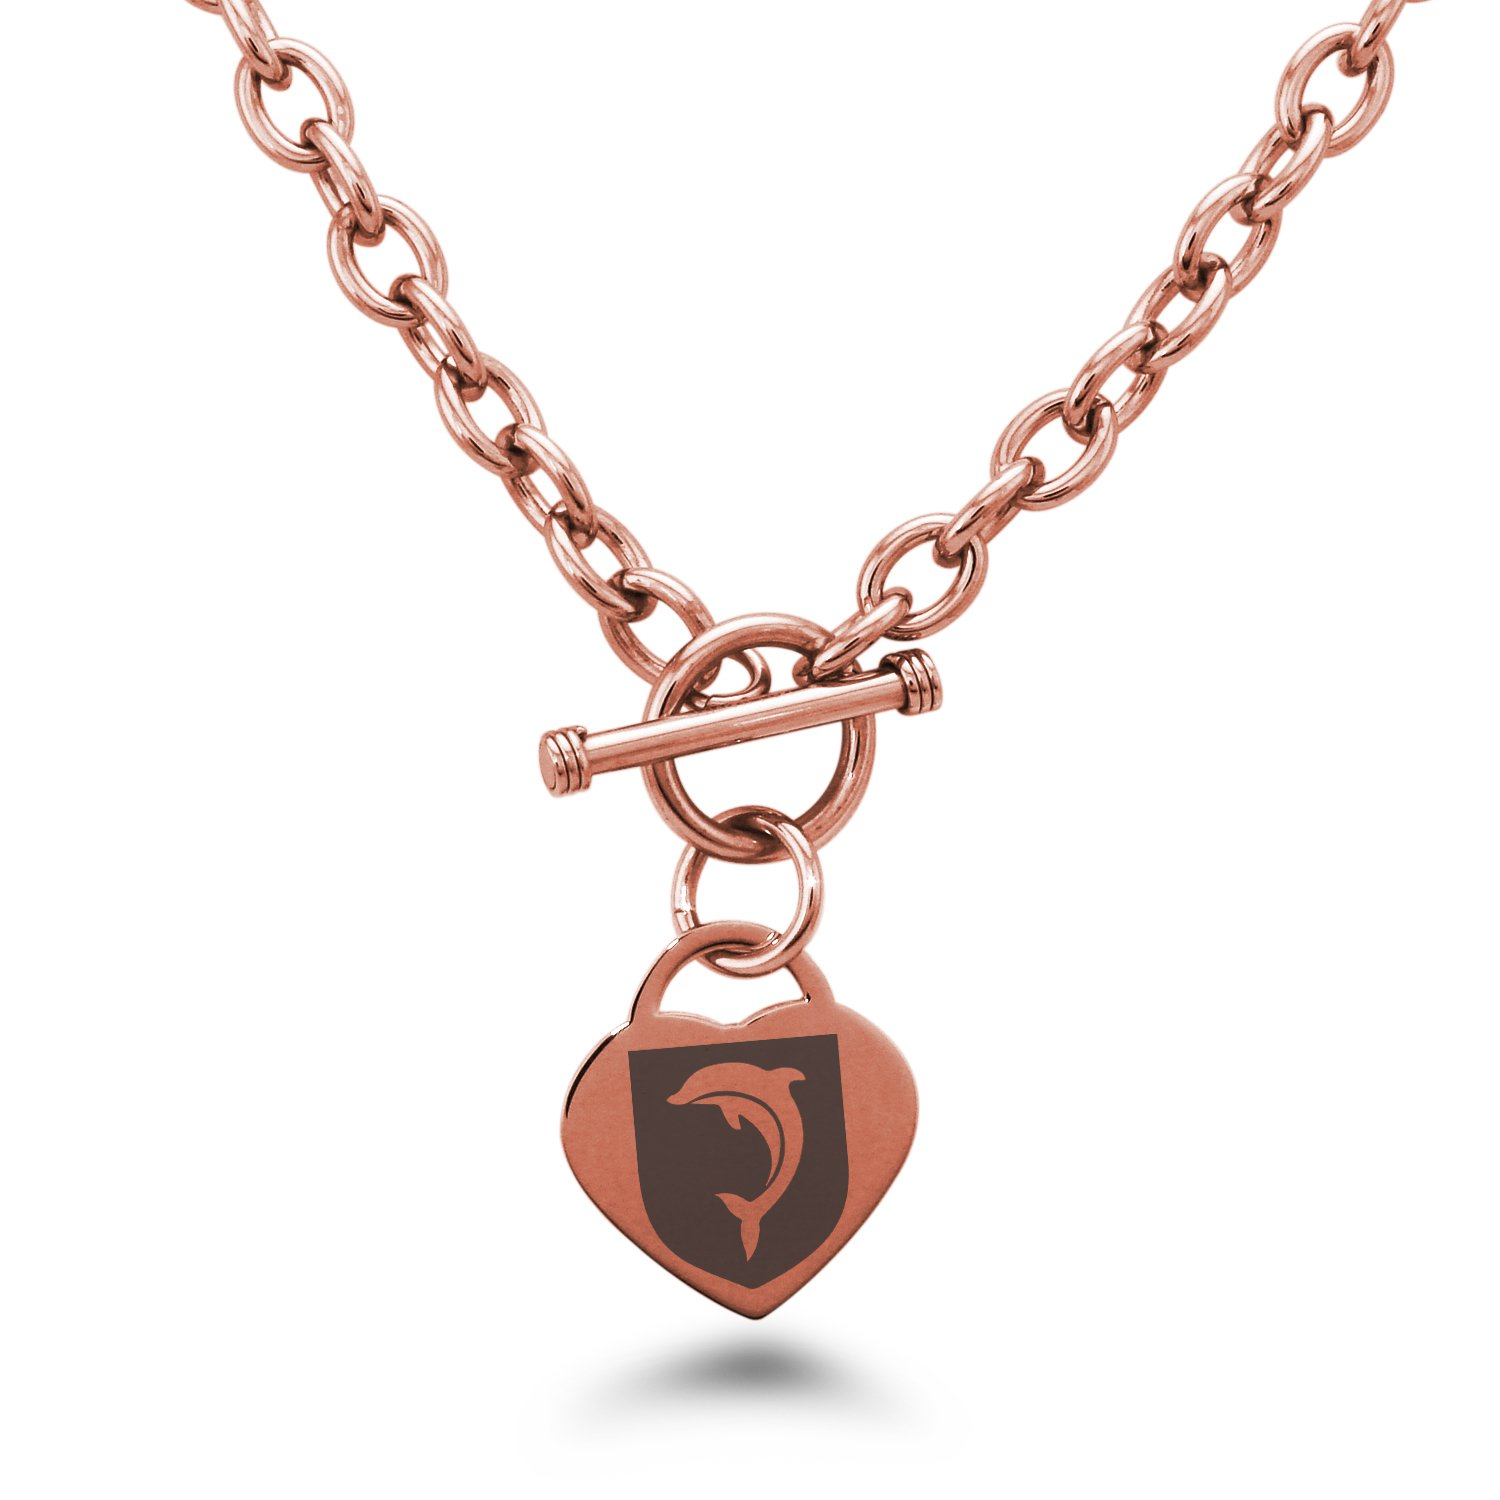 Tioneer Rose Gold Plated Stainless Steel Dolphin Diligence Coat of Arms Shield Symbols Heart Charm, Necklace Only